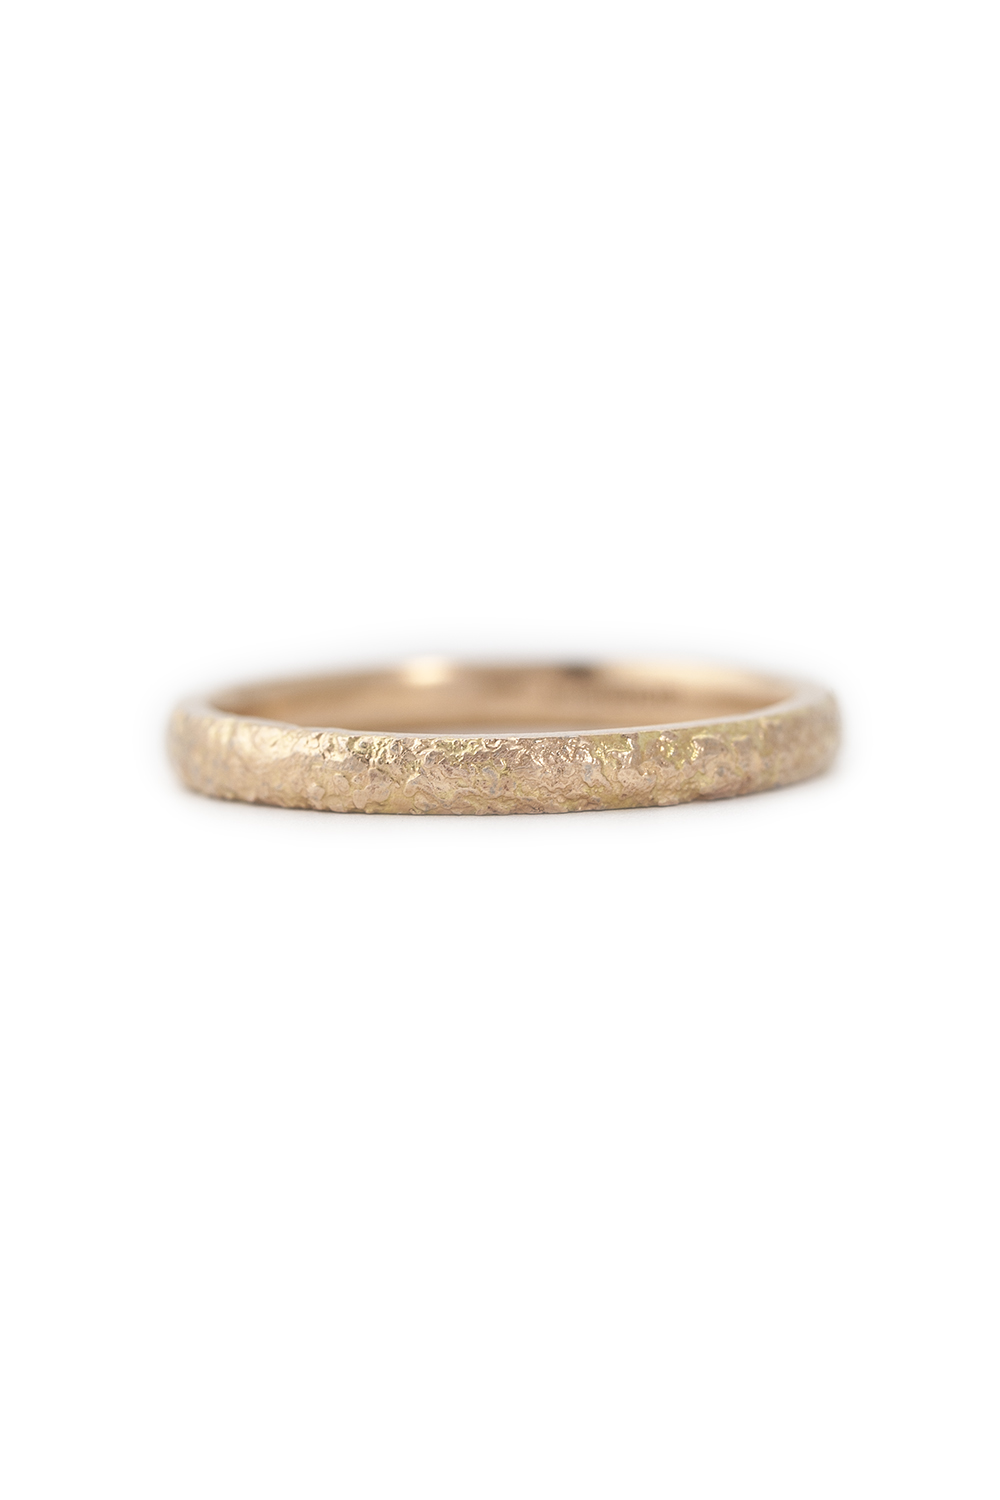 Gold dust fused ring in rose gold